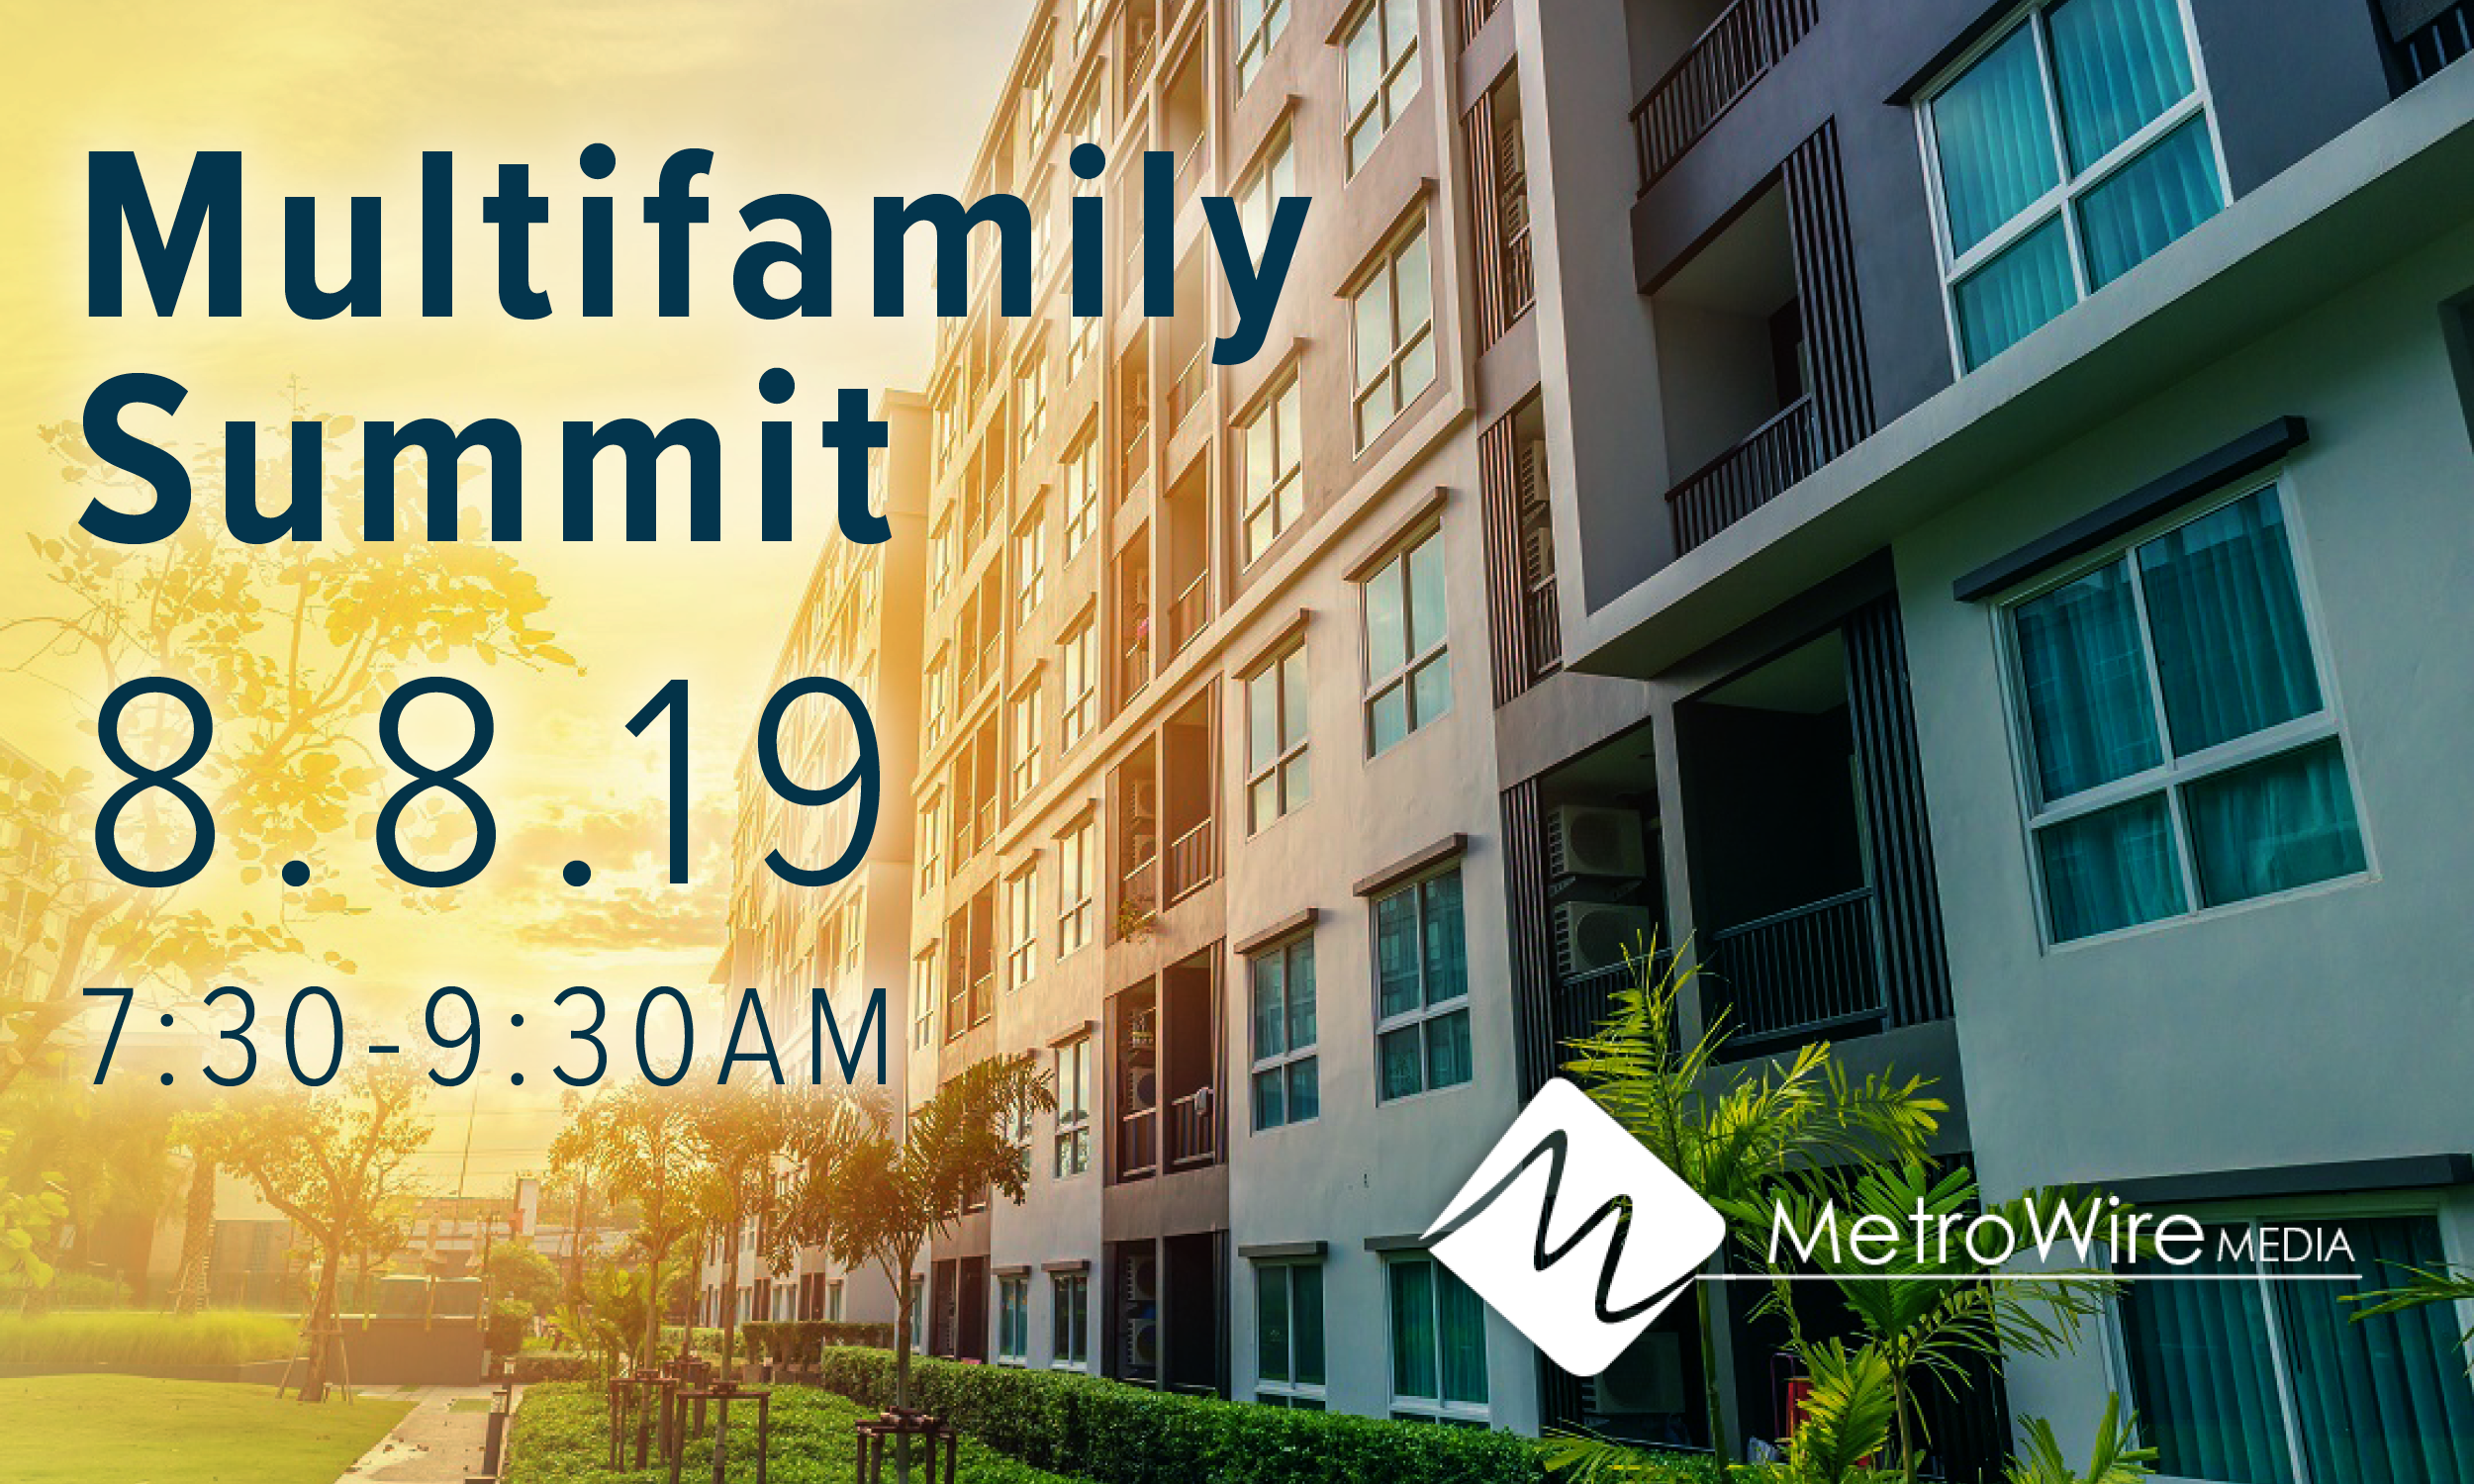 Multifamily Summit Header Image.png